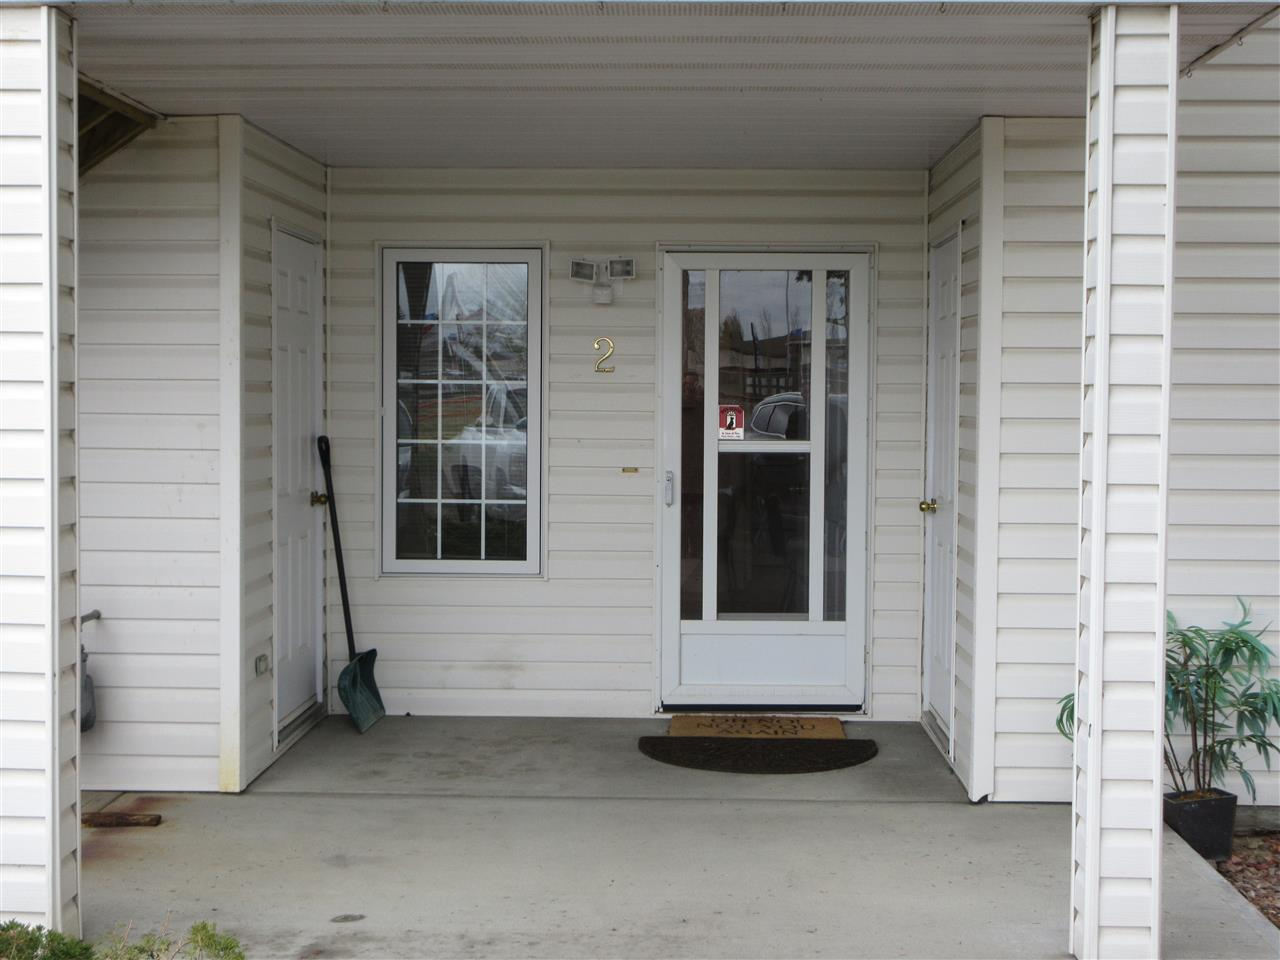 MLS® listing #E4157773 for sale located at #2 4420 47 ST